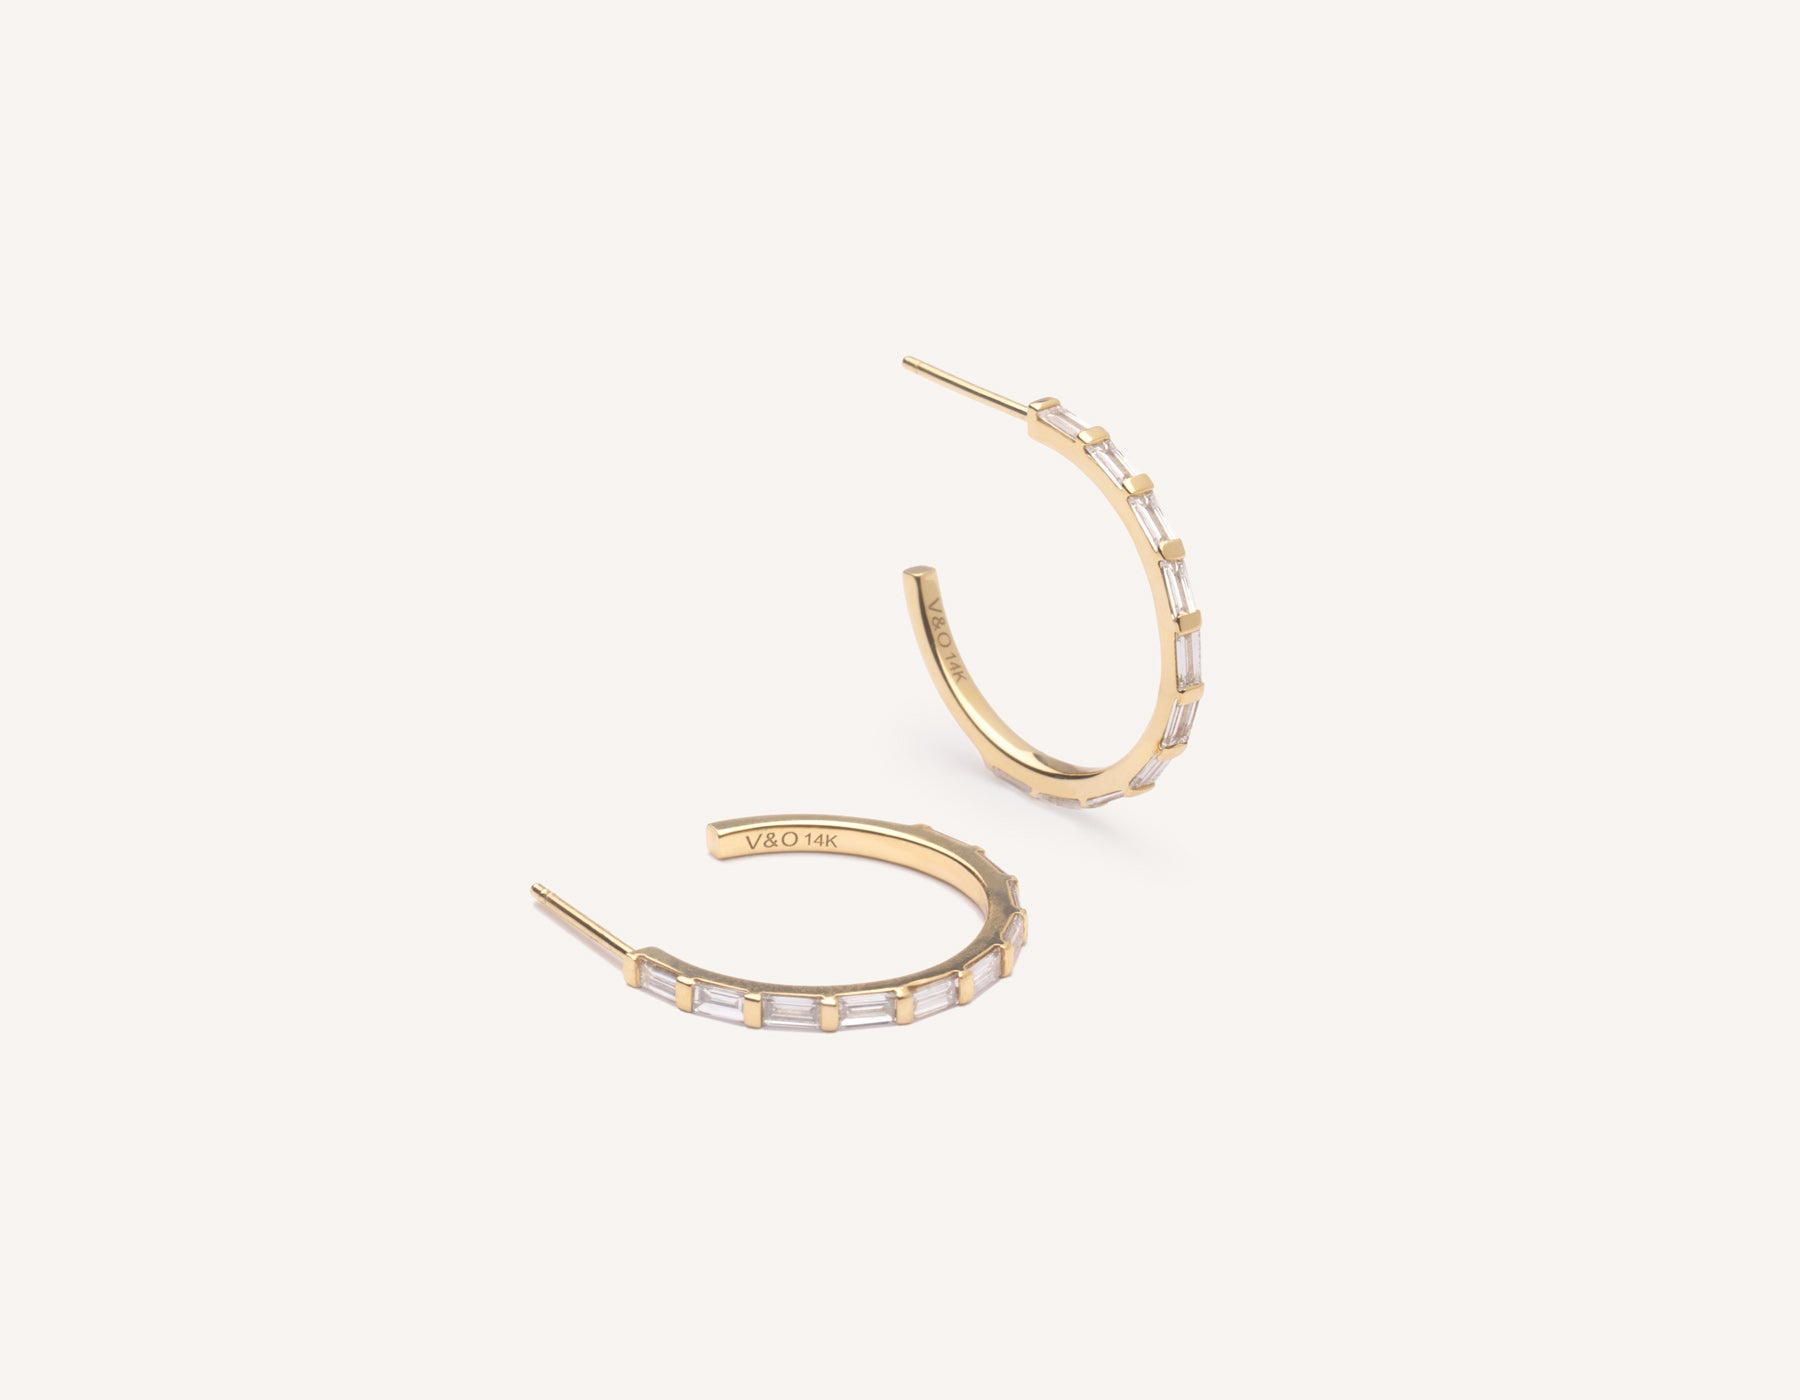 Vrai & Oro modern minimalist 14k solid gold Baguette Diamond Hoop earrings, 14K Yellow Gold